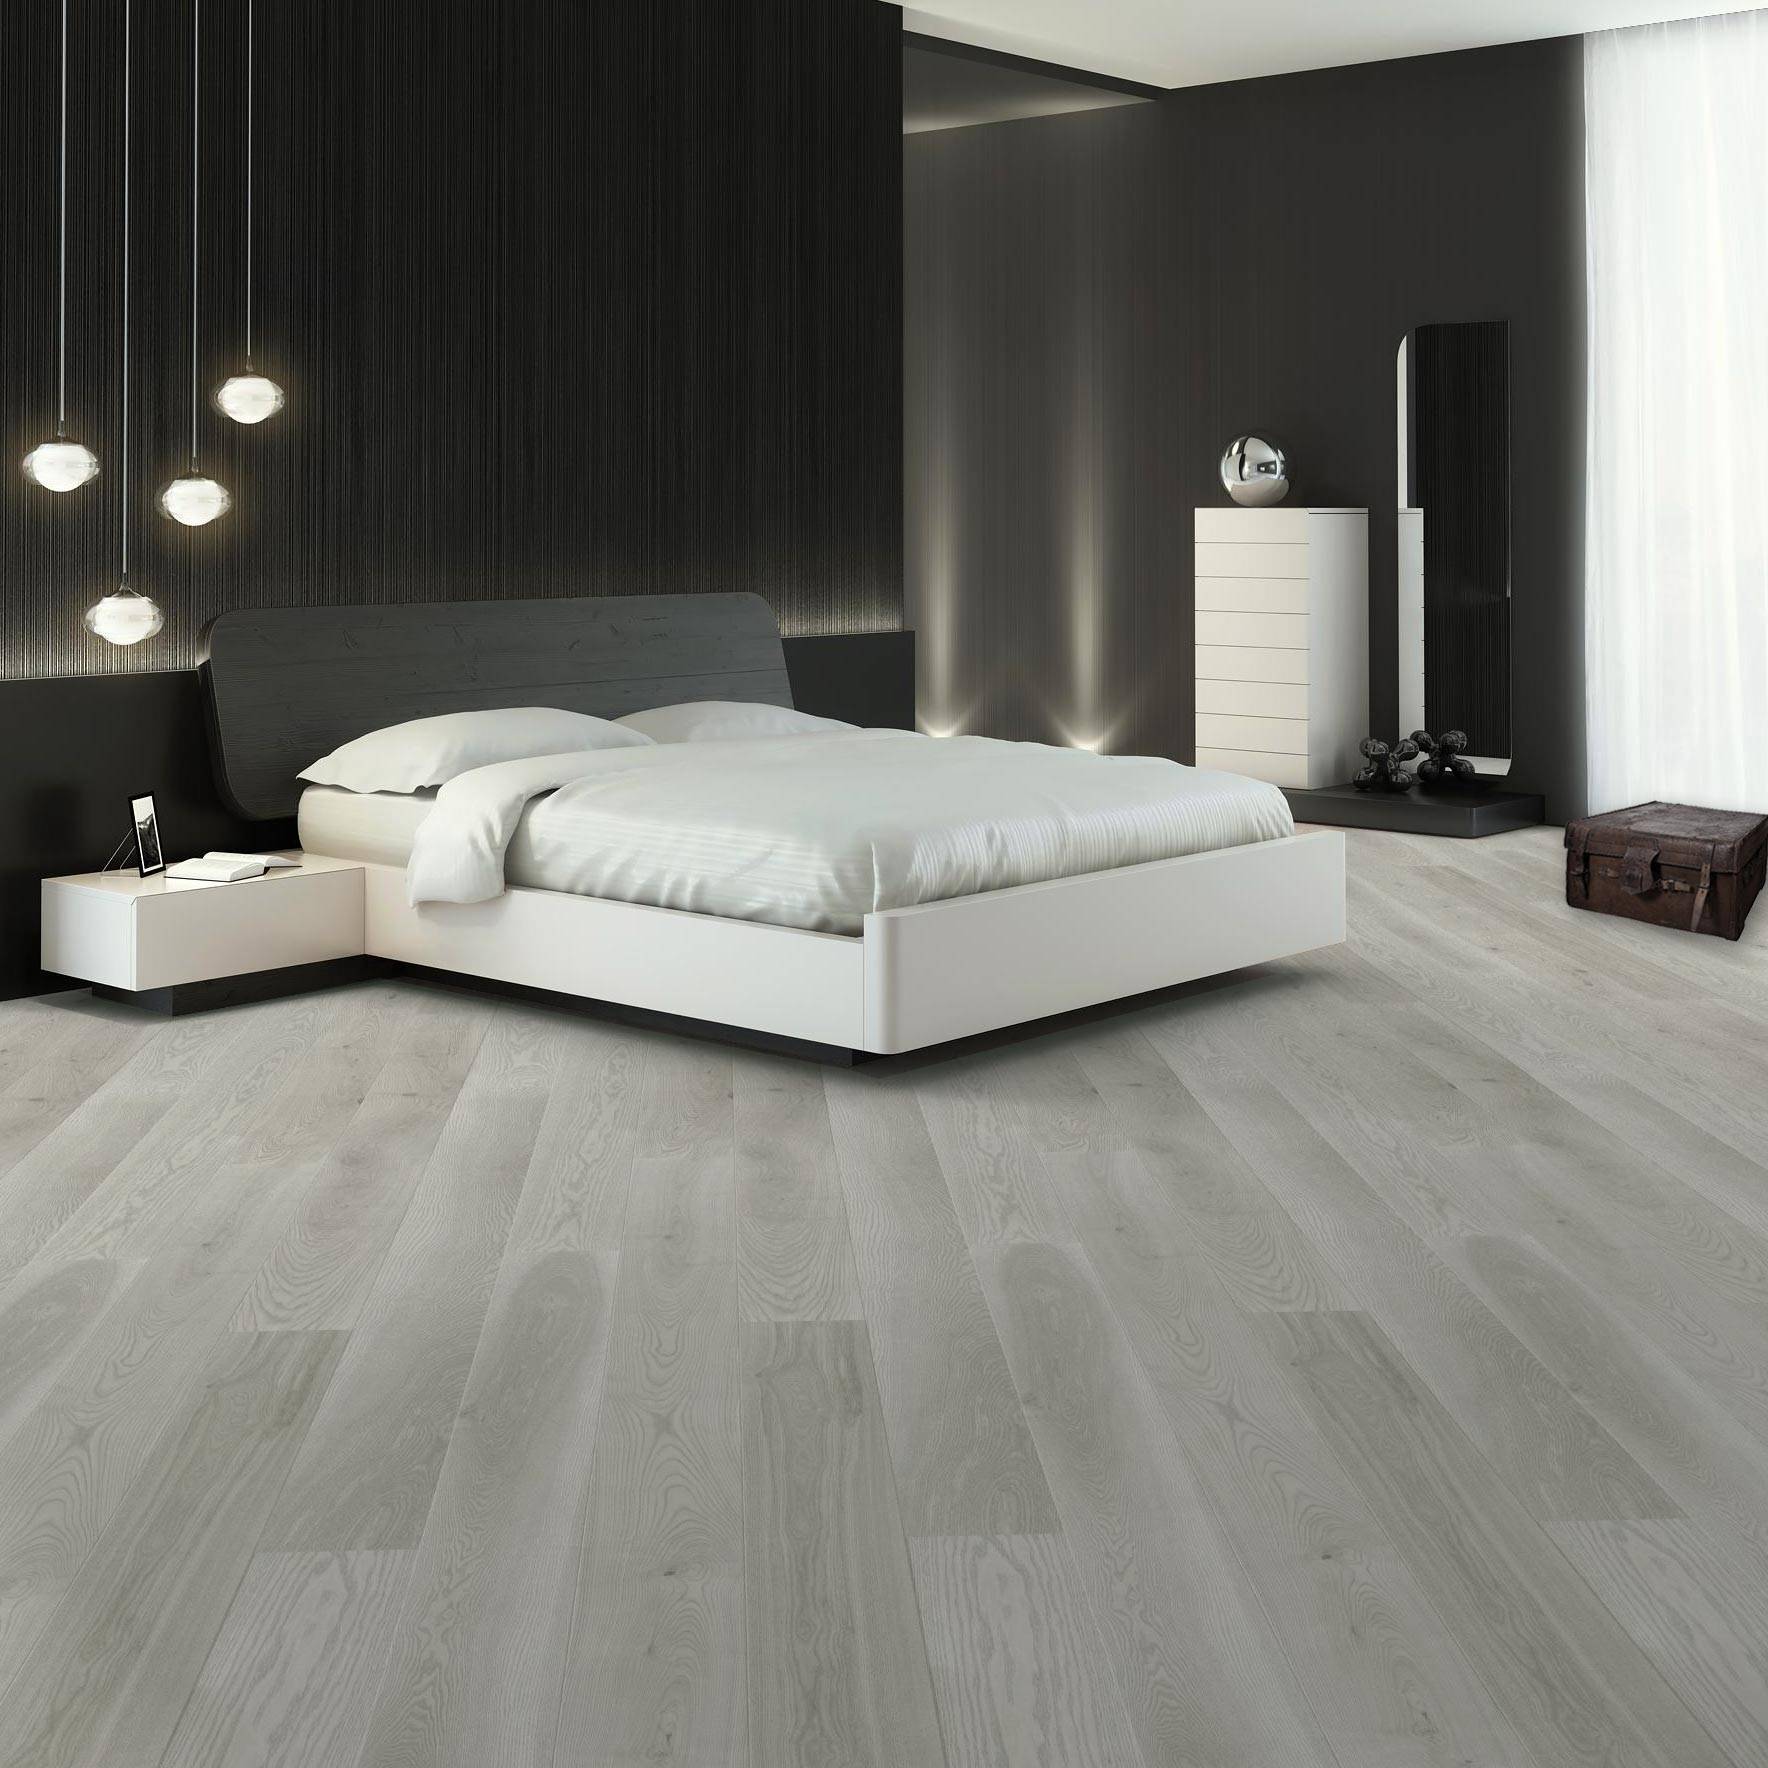 Abbey Ruthin 14mm Grey Oak Matt Lacquered Click Engineered Floor